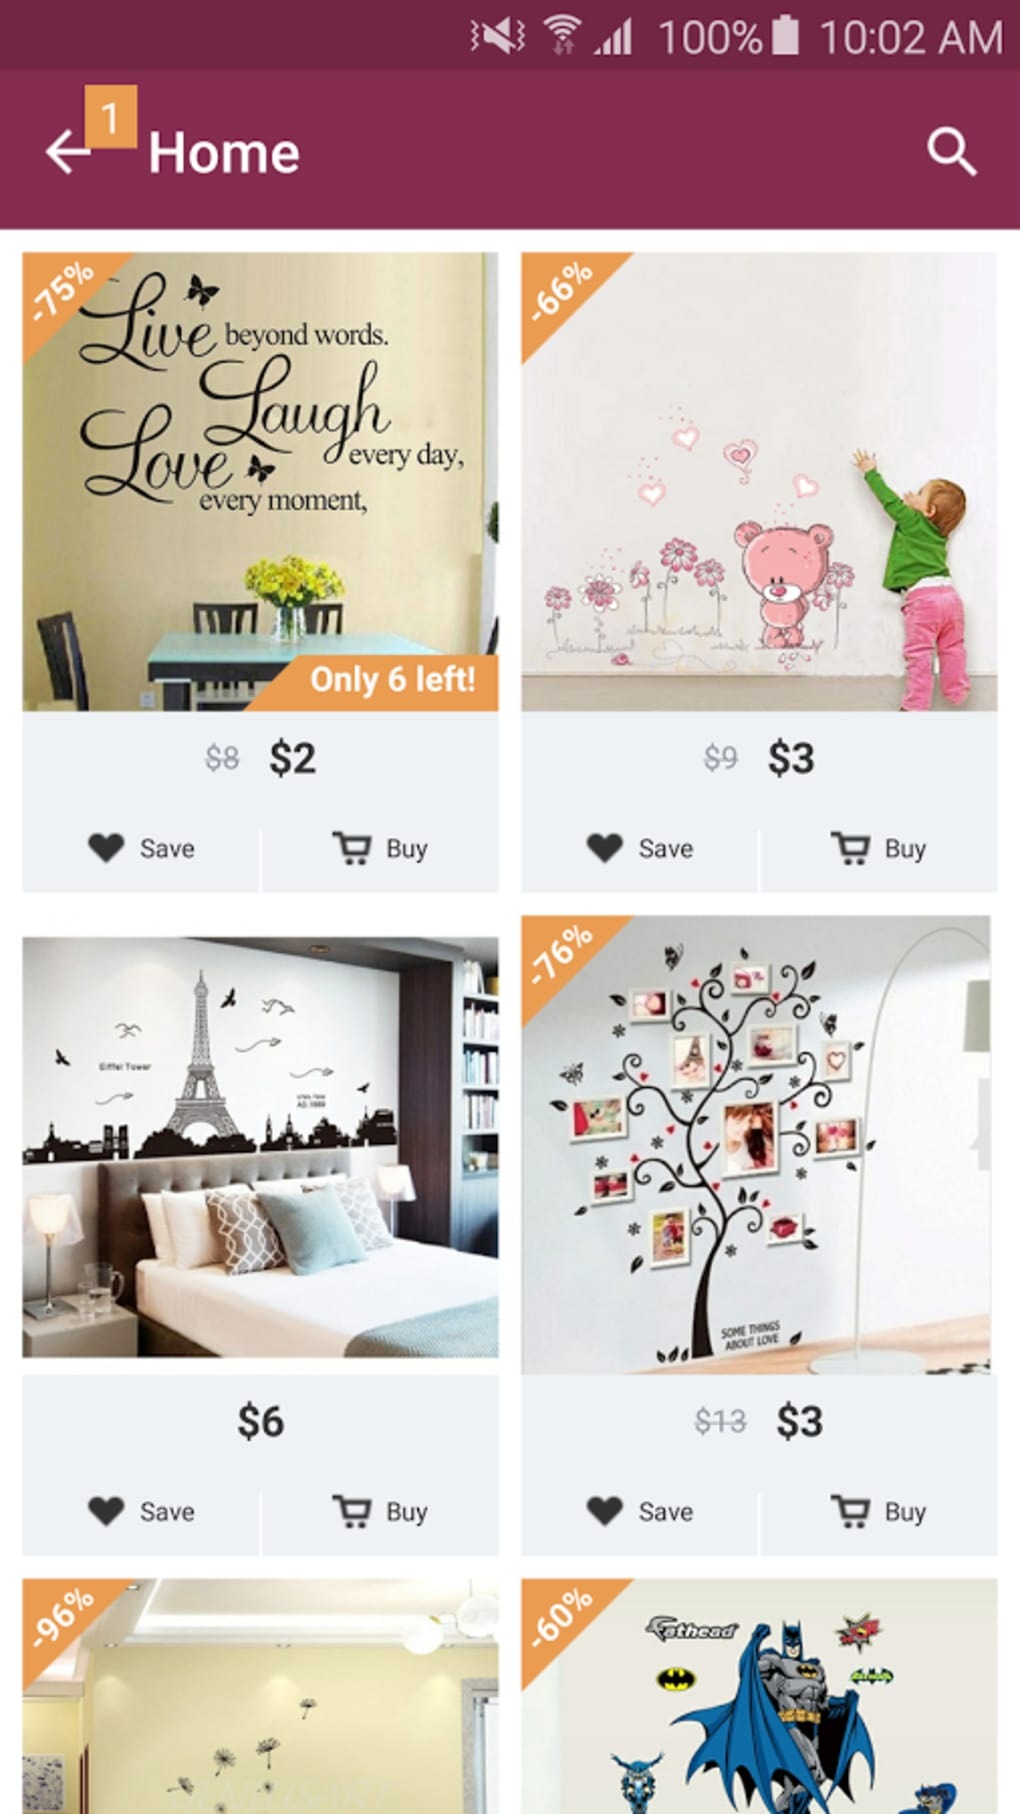 Charming Home E Design Decor Shopping Part - 7: ... Belli E Originali, Ma Puoi Persino Acquistarli Dallu0027applicazione Stessa  In Pochi Passi. Visualizza Descrizione Completa. Home - Design U0026 Decor  Shopping